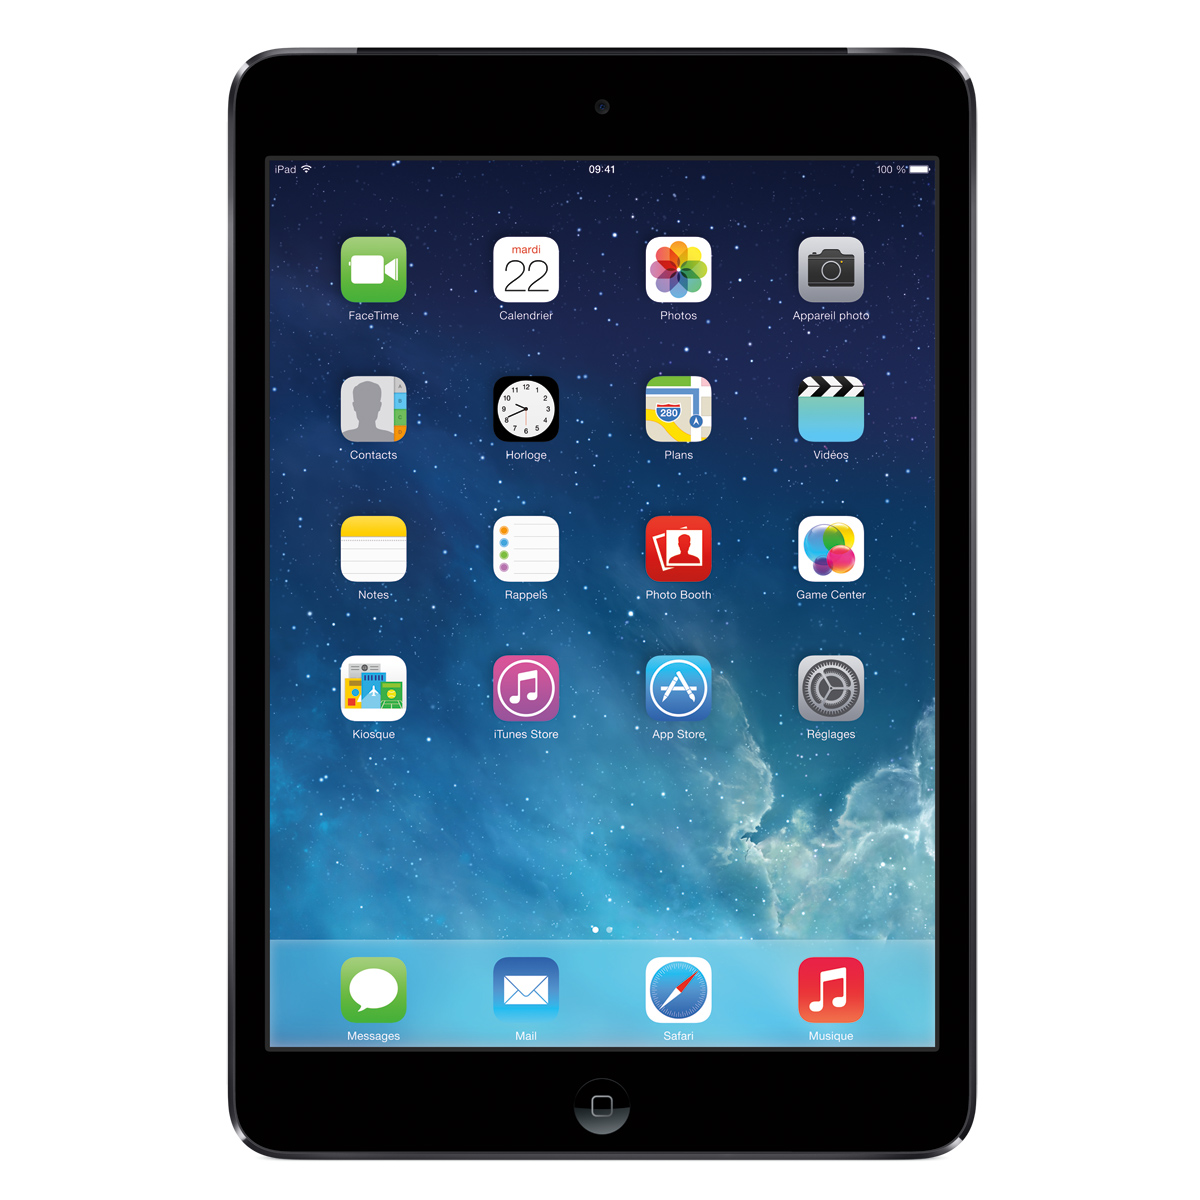 apple ipad mini avec cran retina wi fi 64 go gris sid ral tablette tactile apple sur. Black Bedroom Furniture Sets. Home Design Ideas